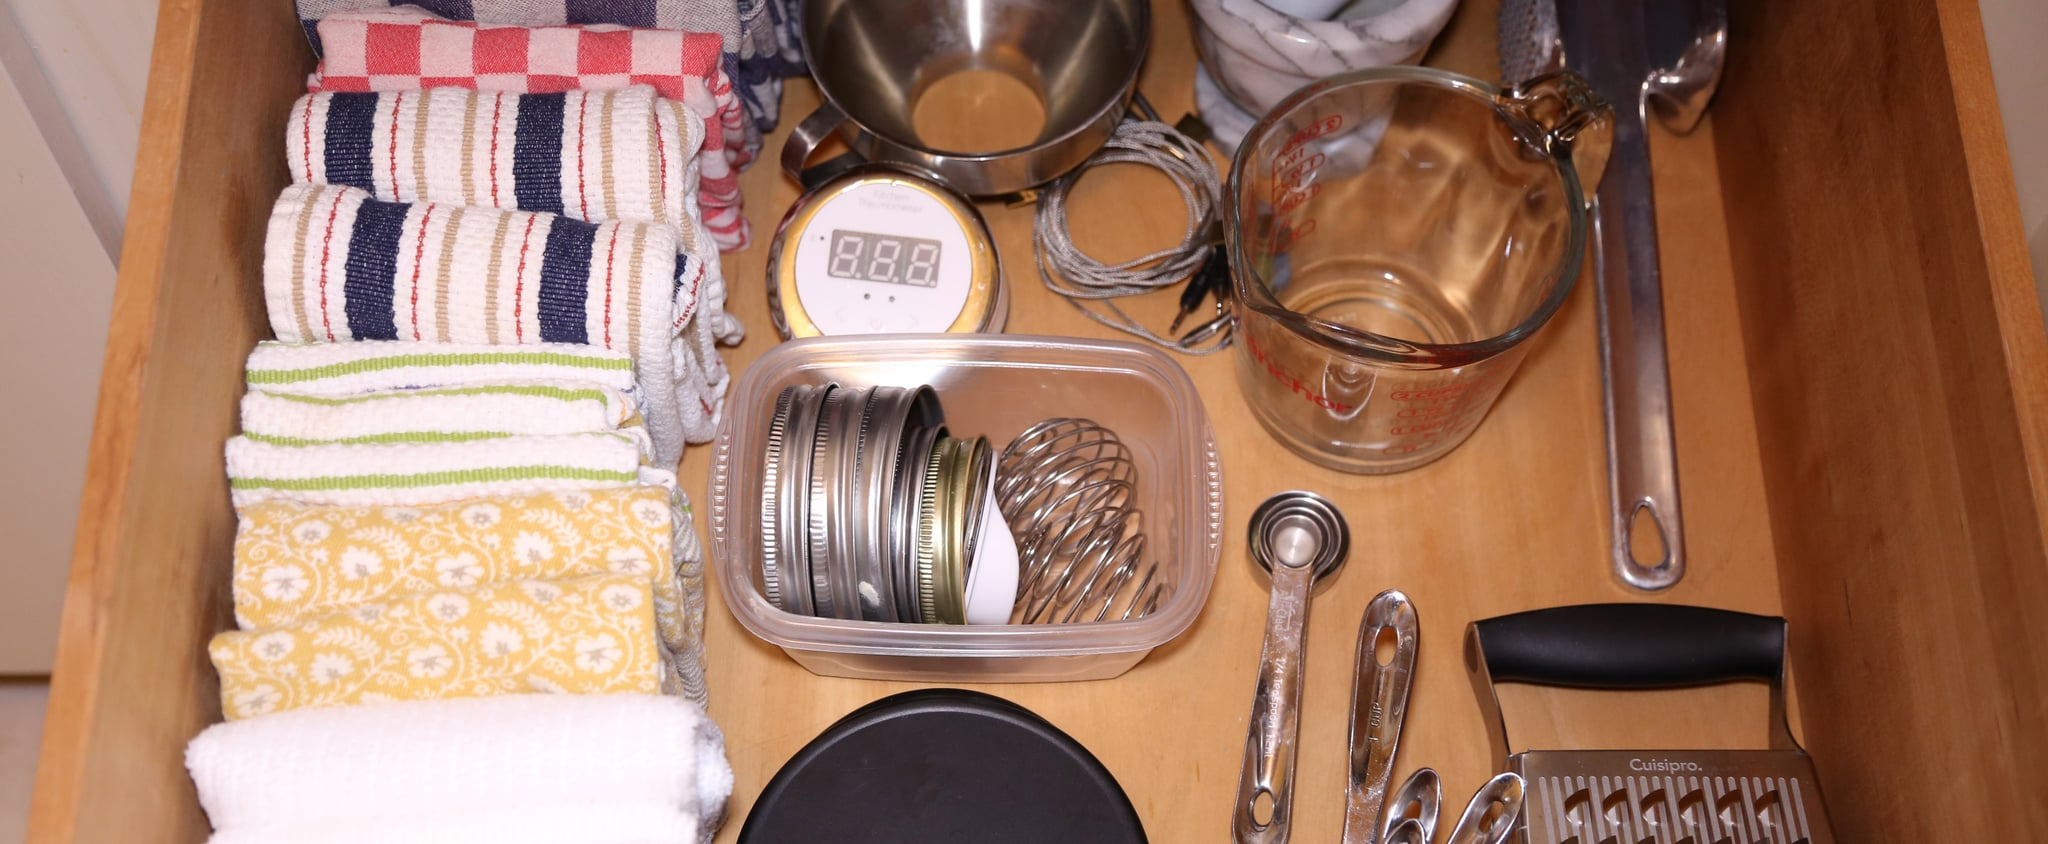 What It's Like to Use the KonMari Method on a Kitchen